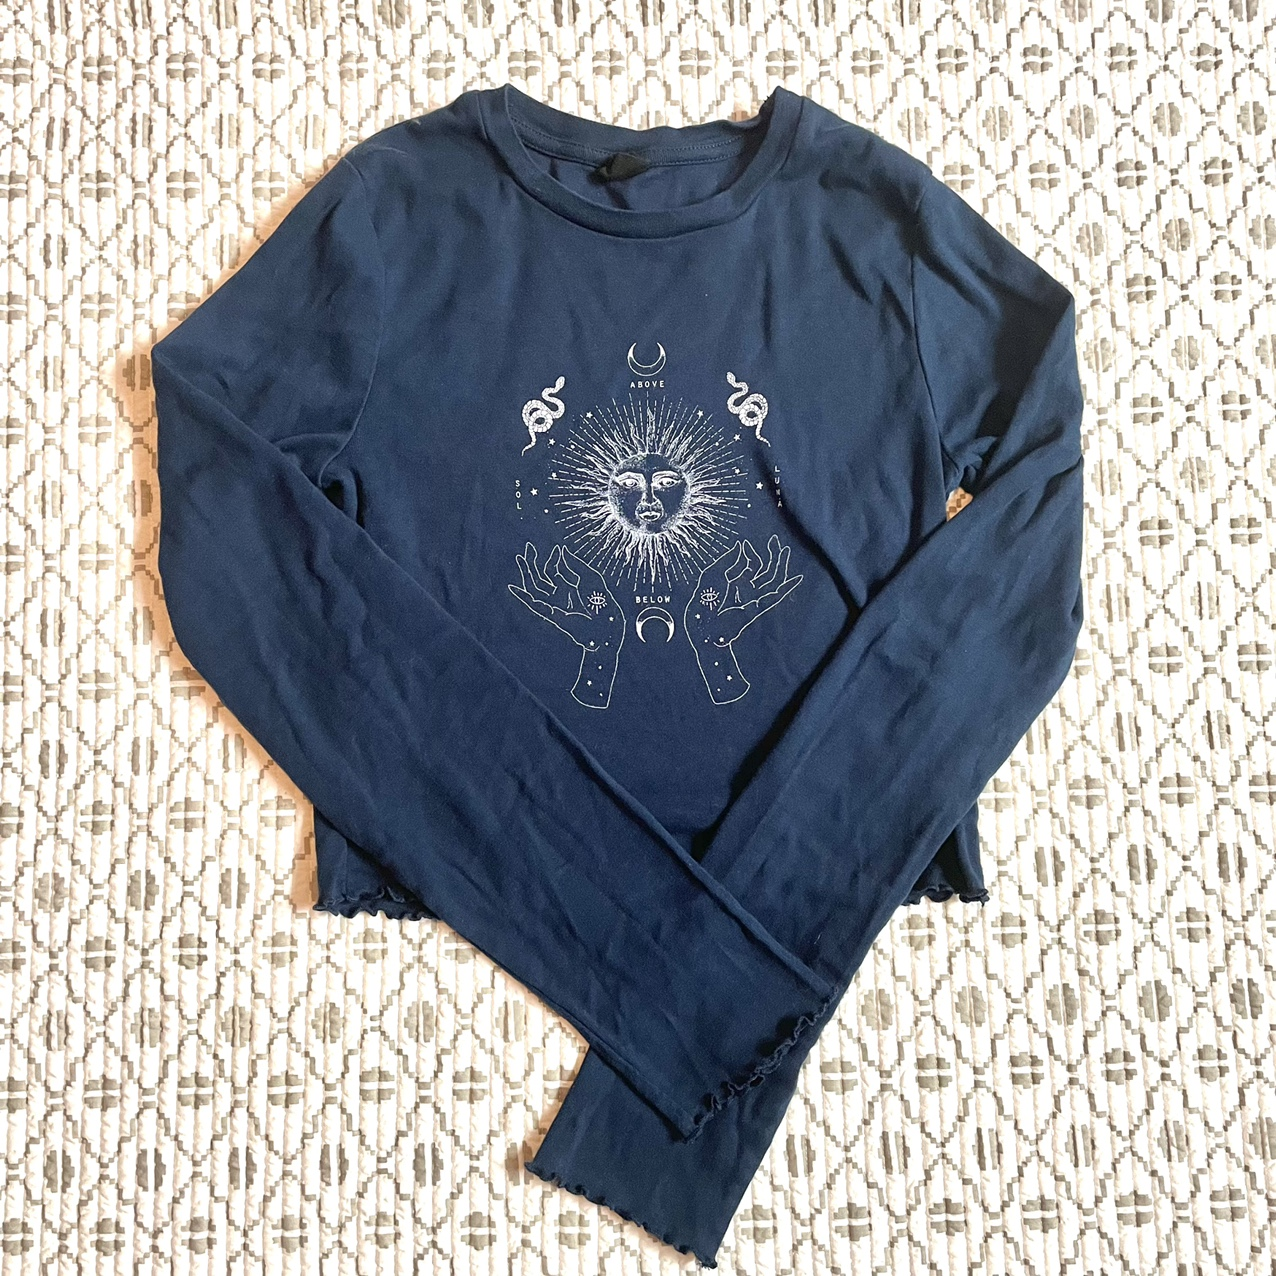 Product Image 1 - Urban Outfitters long sleeve dark